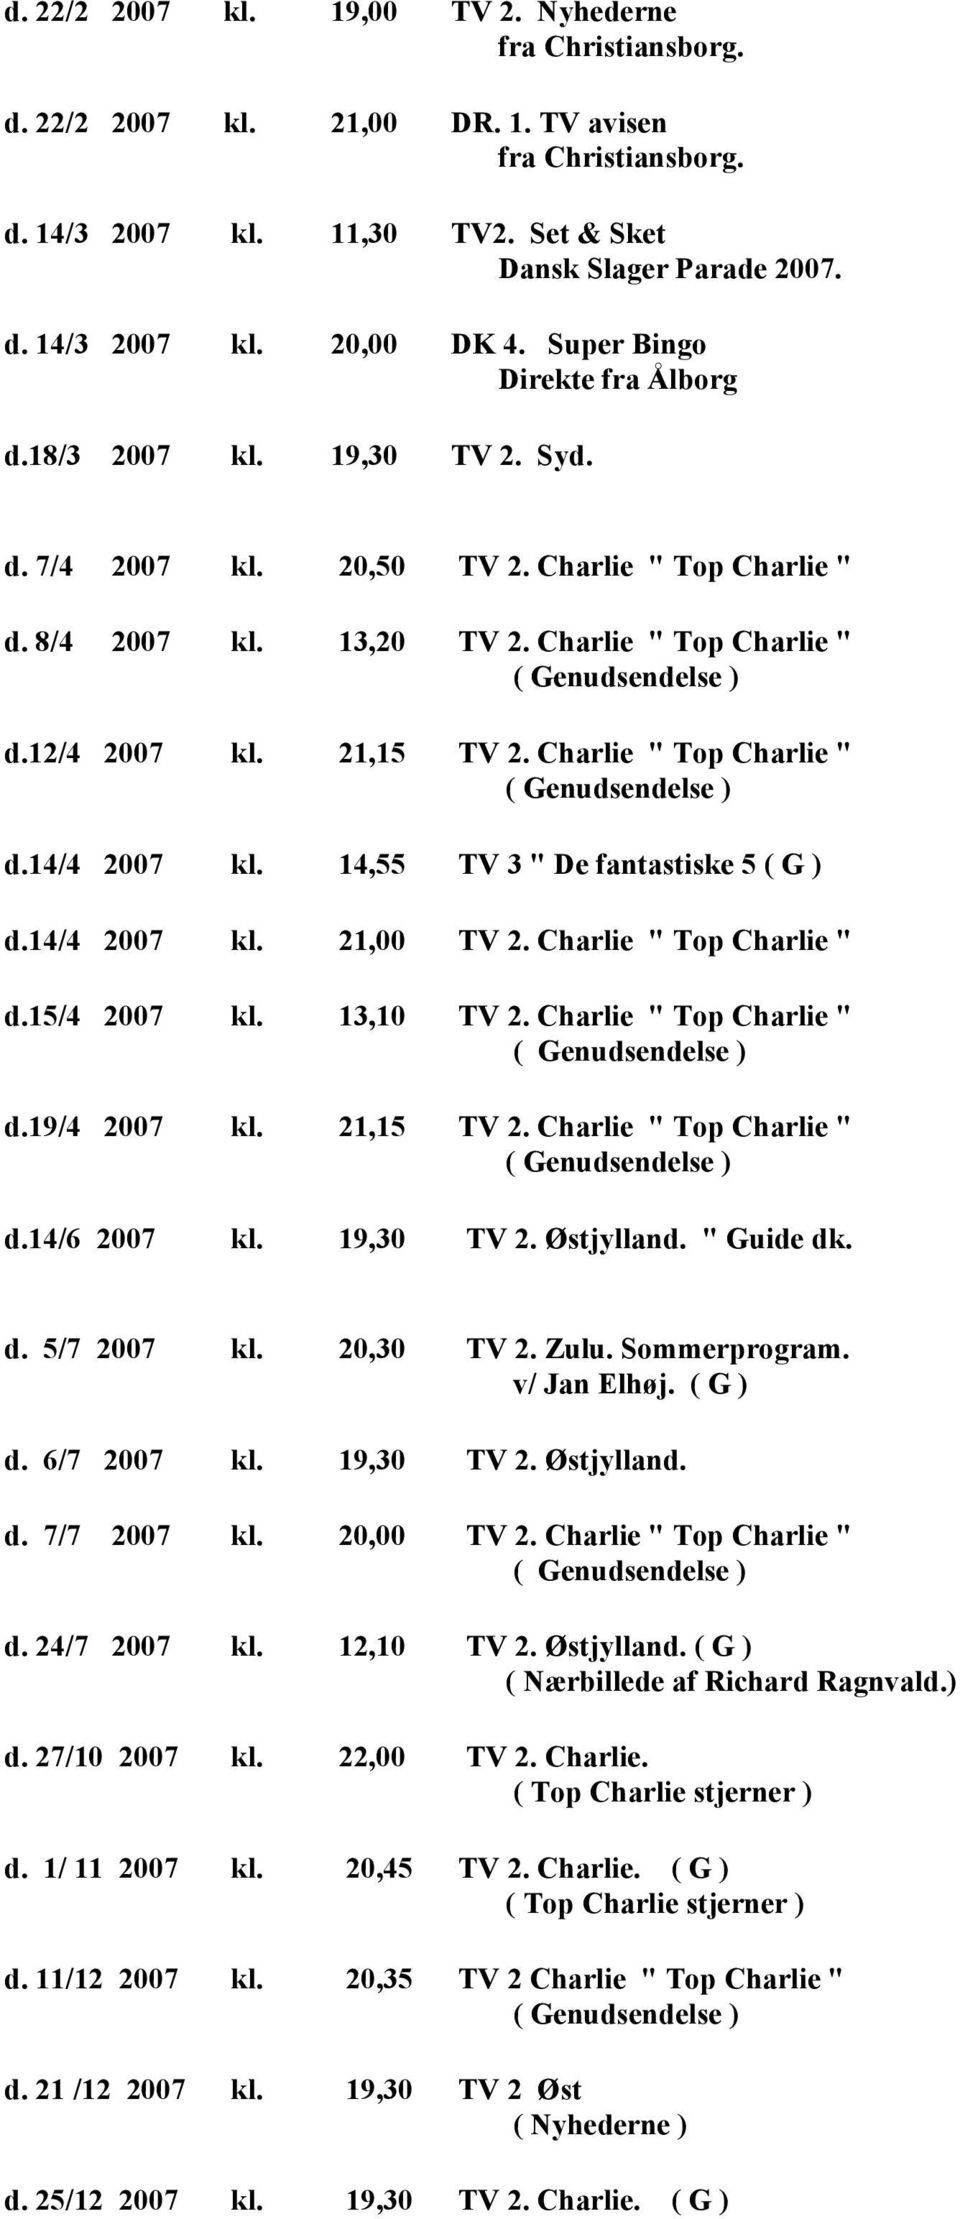 "12/4 2007 kl. 21,15 TV 2. Charlie "" Top Charlie "" ( Genudsendelse ) d.14/4 2007 kl. 14,55 TV 3 "" De fantastiske 5 ( G ) d.14/4 2007 kl. 21,00 TV 2. Charlie "" Top Charlie "" d.15/4 2007 kl. 13,10 TV 2."